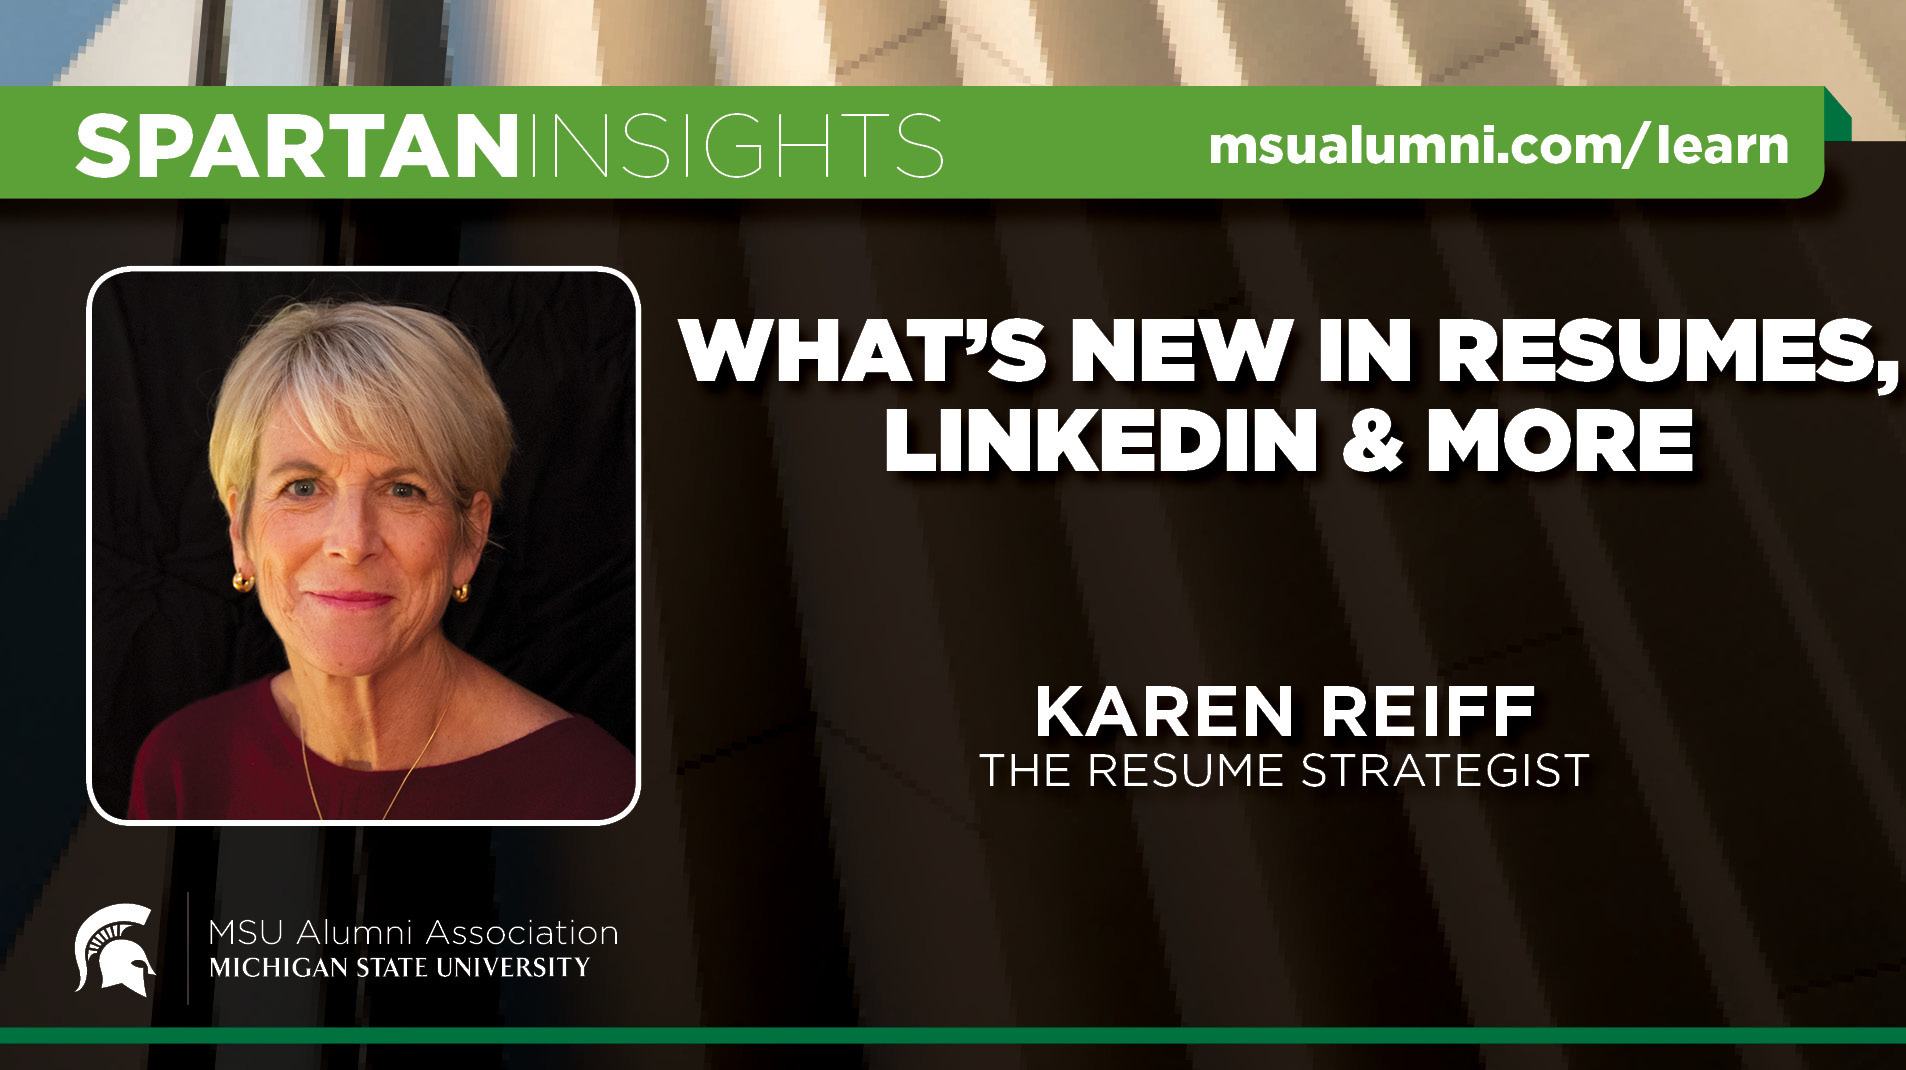 webinar cover image for Karen Reiff | What's New in Resumes, LinkedIn & More